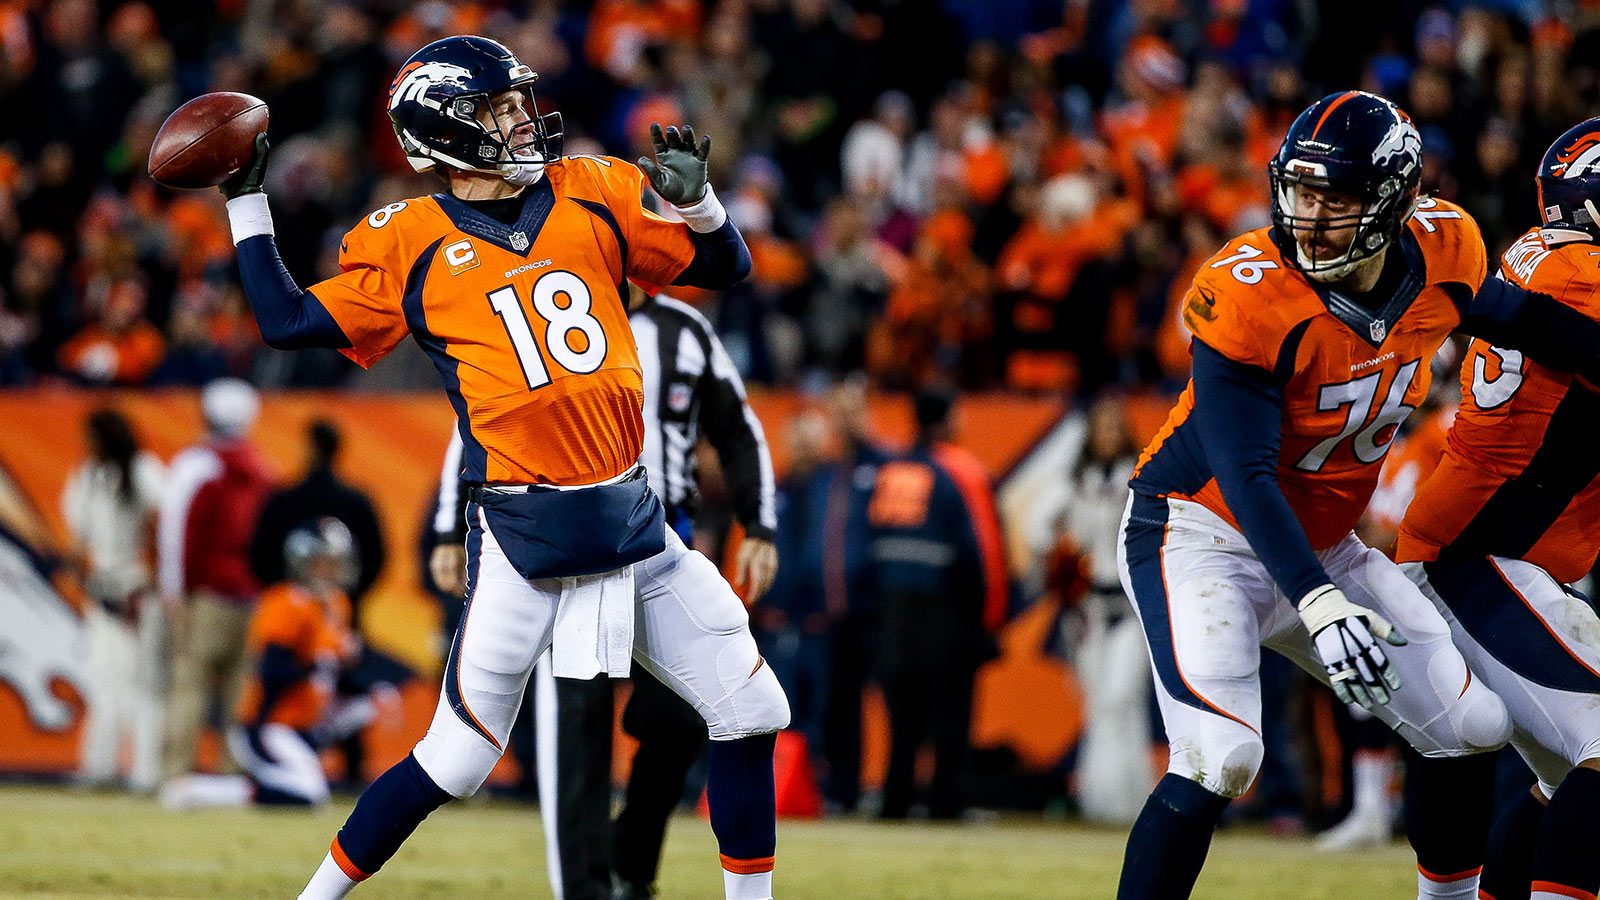 Peyton Manning comes off bench, rallies Broncos to AFC's top seed